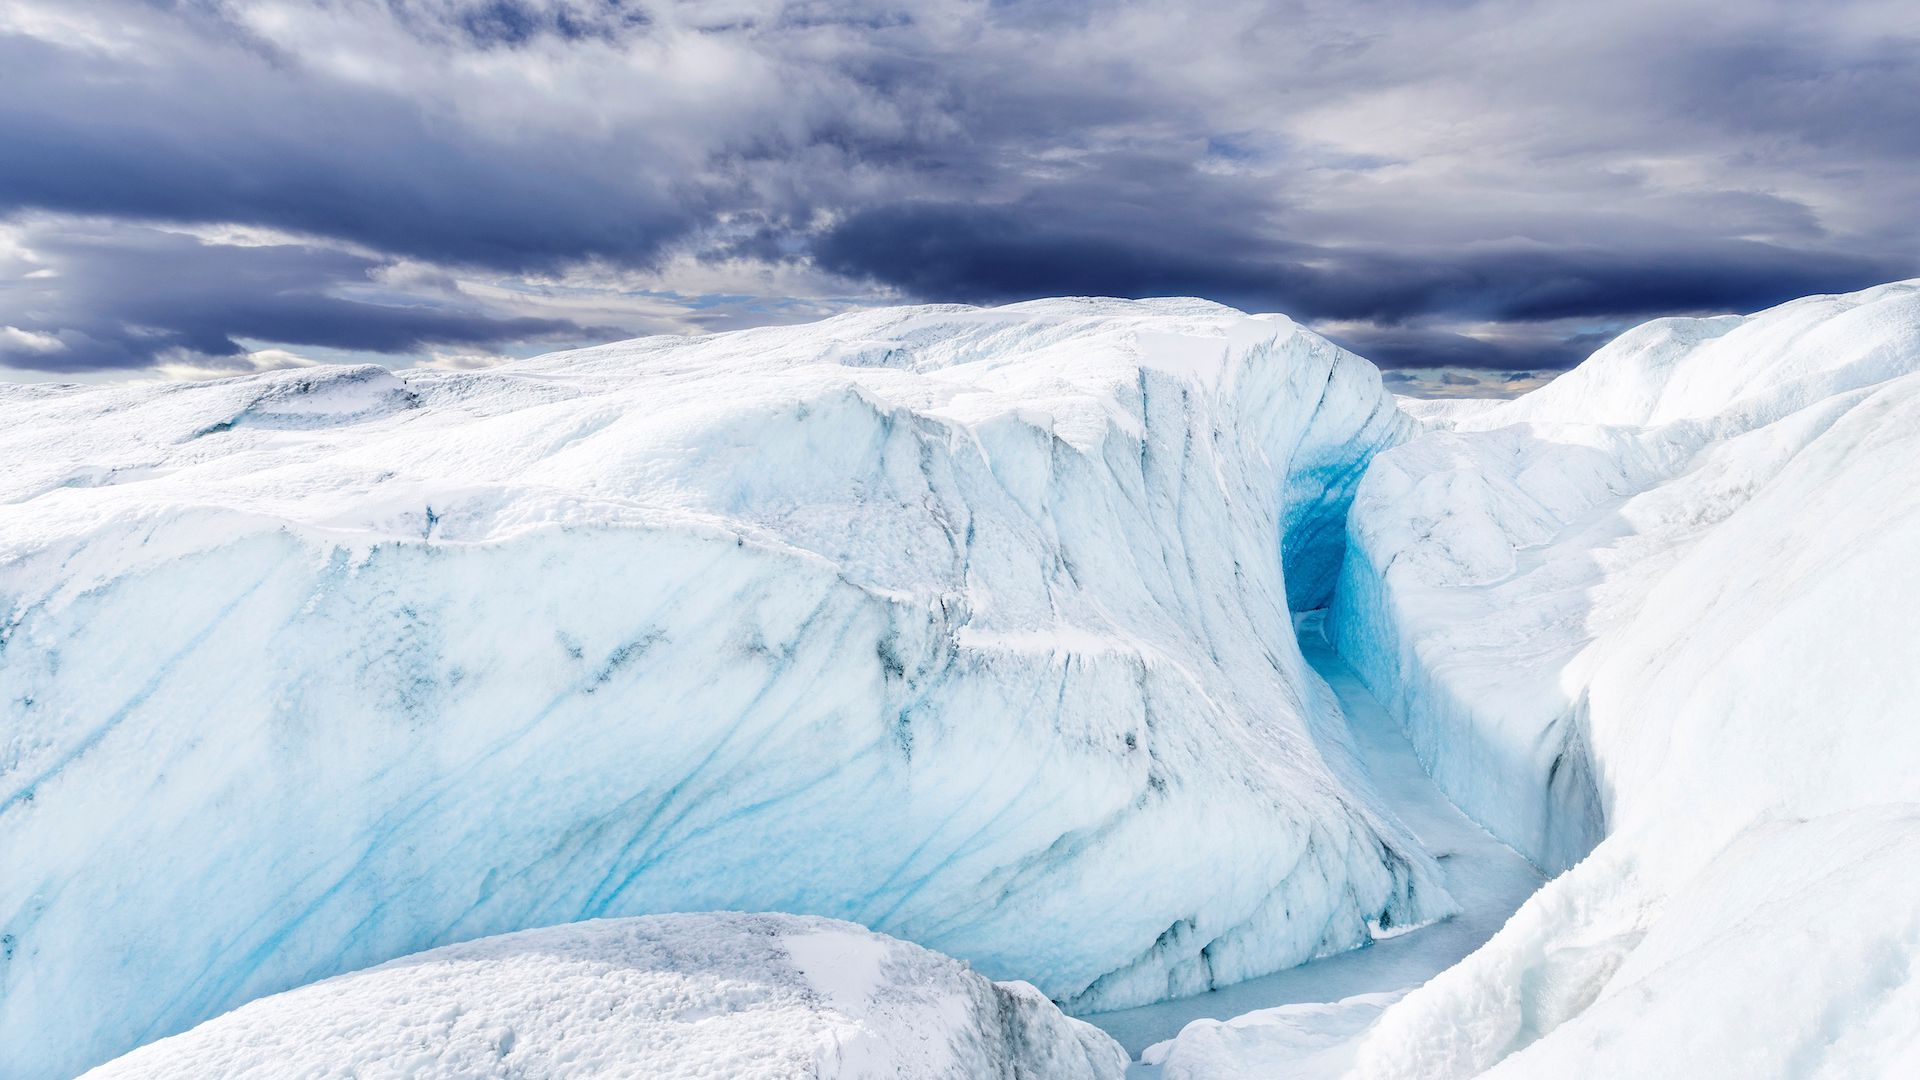 Terminus of the Russell Glacier. Landscape close to the Greenland Ice Sheet near Kangerlussuaq.